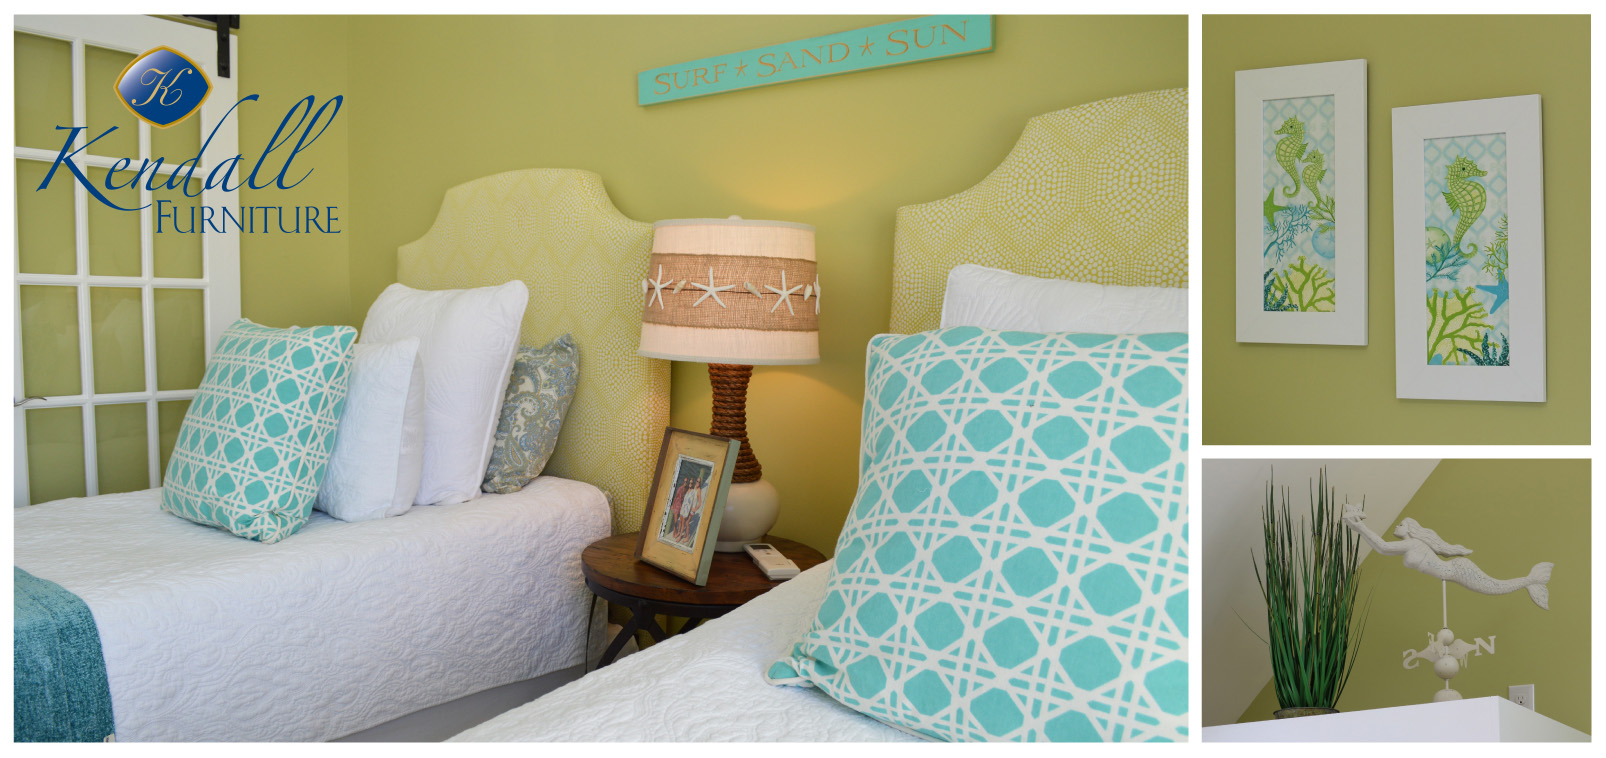 Kendall Furniture Brings Coastal Flare To Ocean City Condo Hgtv Show Kendall Home Furnishings